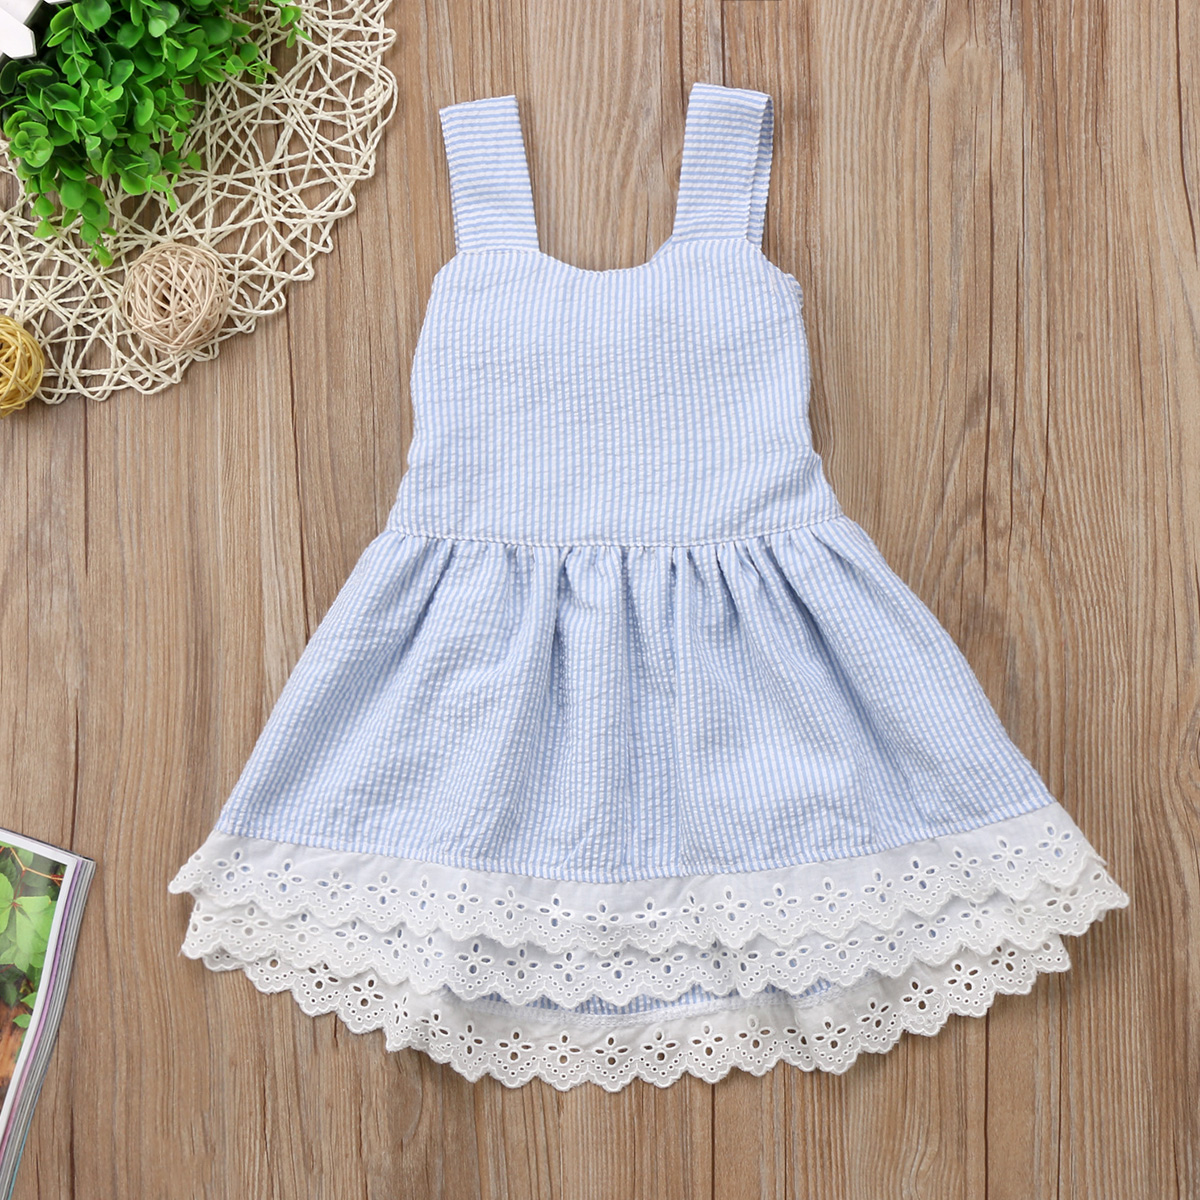 New Arrive Summer Toddler Kids Baby Girls Cute Sleeveless Backless Dress Princess Party Pageant Wedding Tutu Dress Clothes guess guess seductive homme page 6